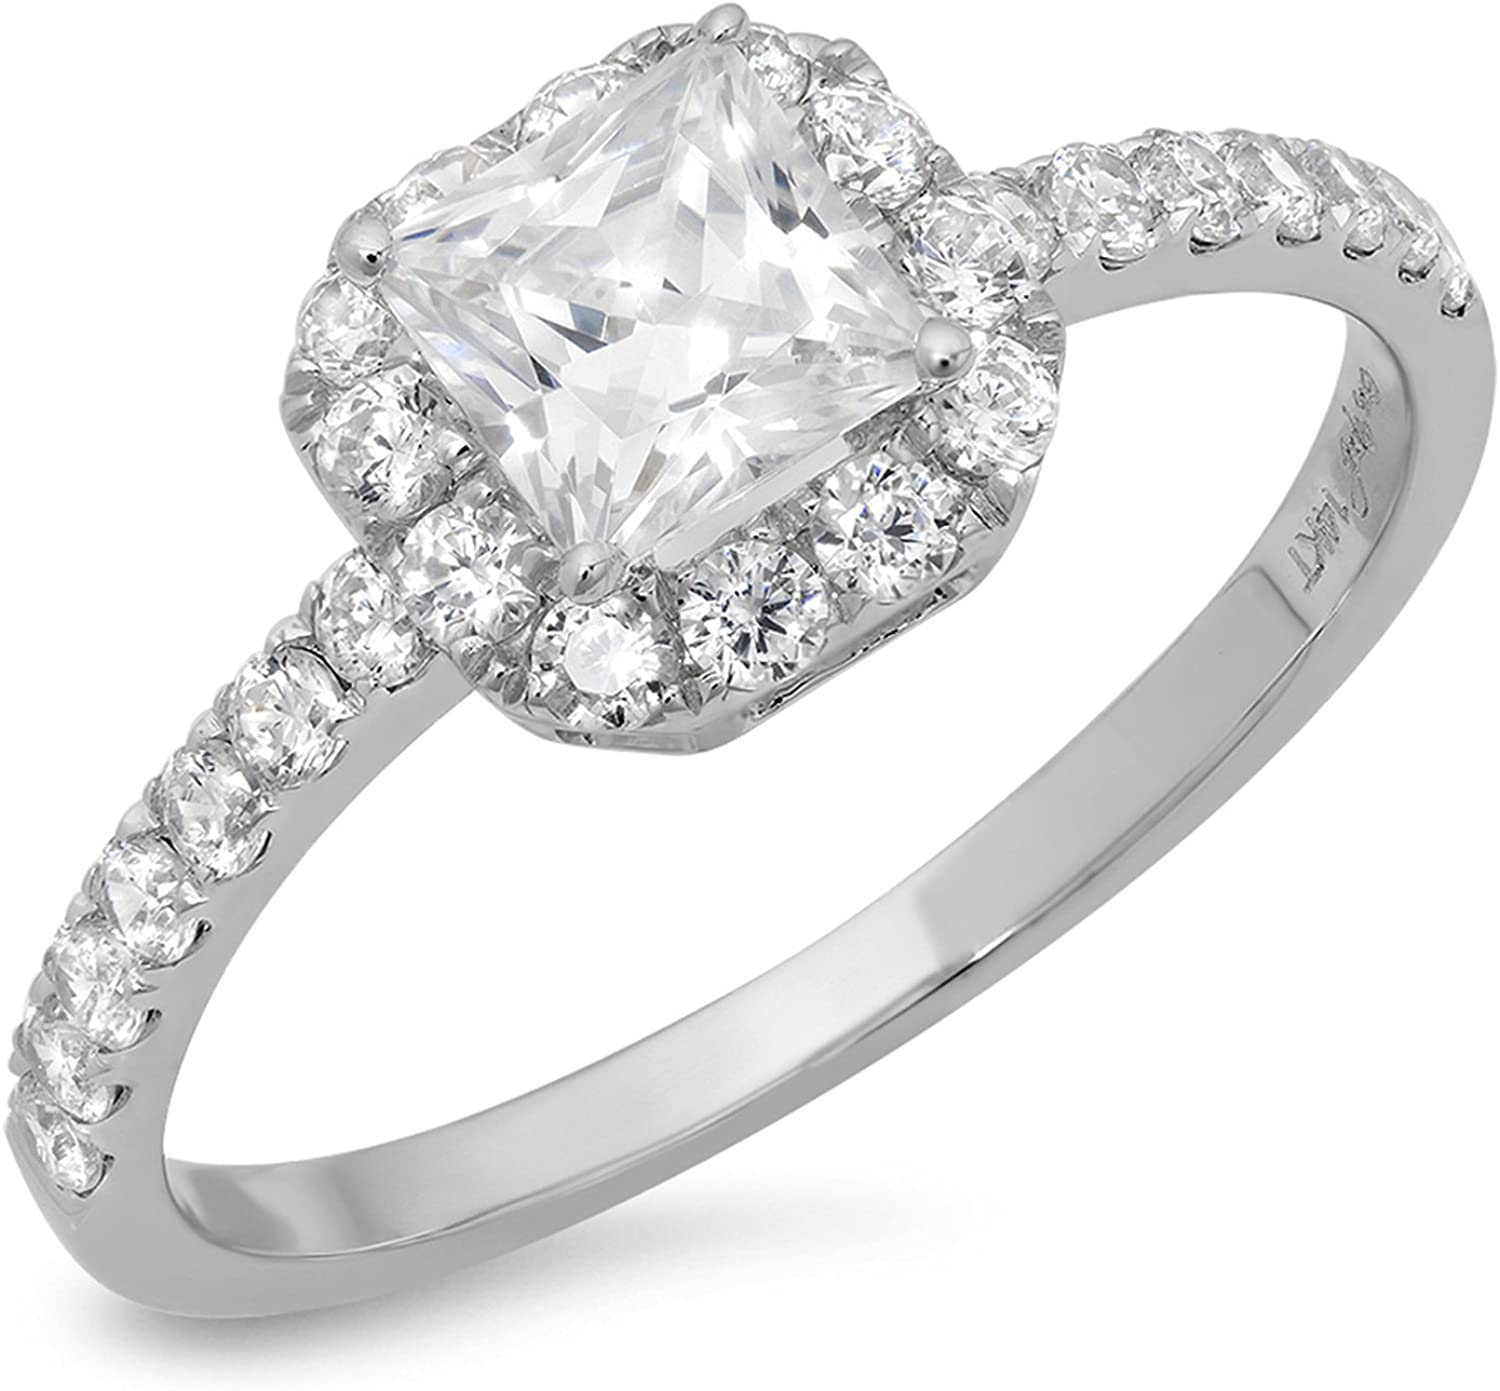 1.34ct Brilliant Princess Cut Solitaire with accent Genuine Lab Created White Sapphire Ideal VVS1 & Simulated Diamond Engagement Promise Statement Anniversary Bridal Wedding Ring Solid 14k White Gold